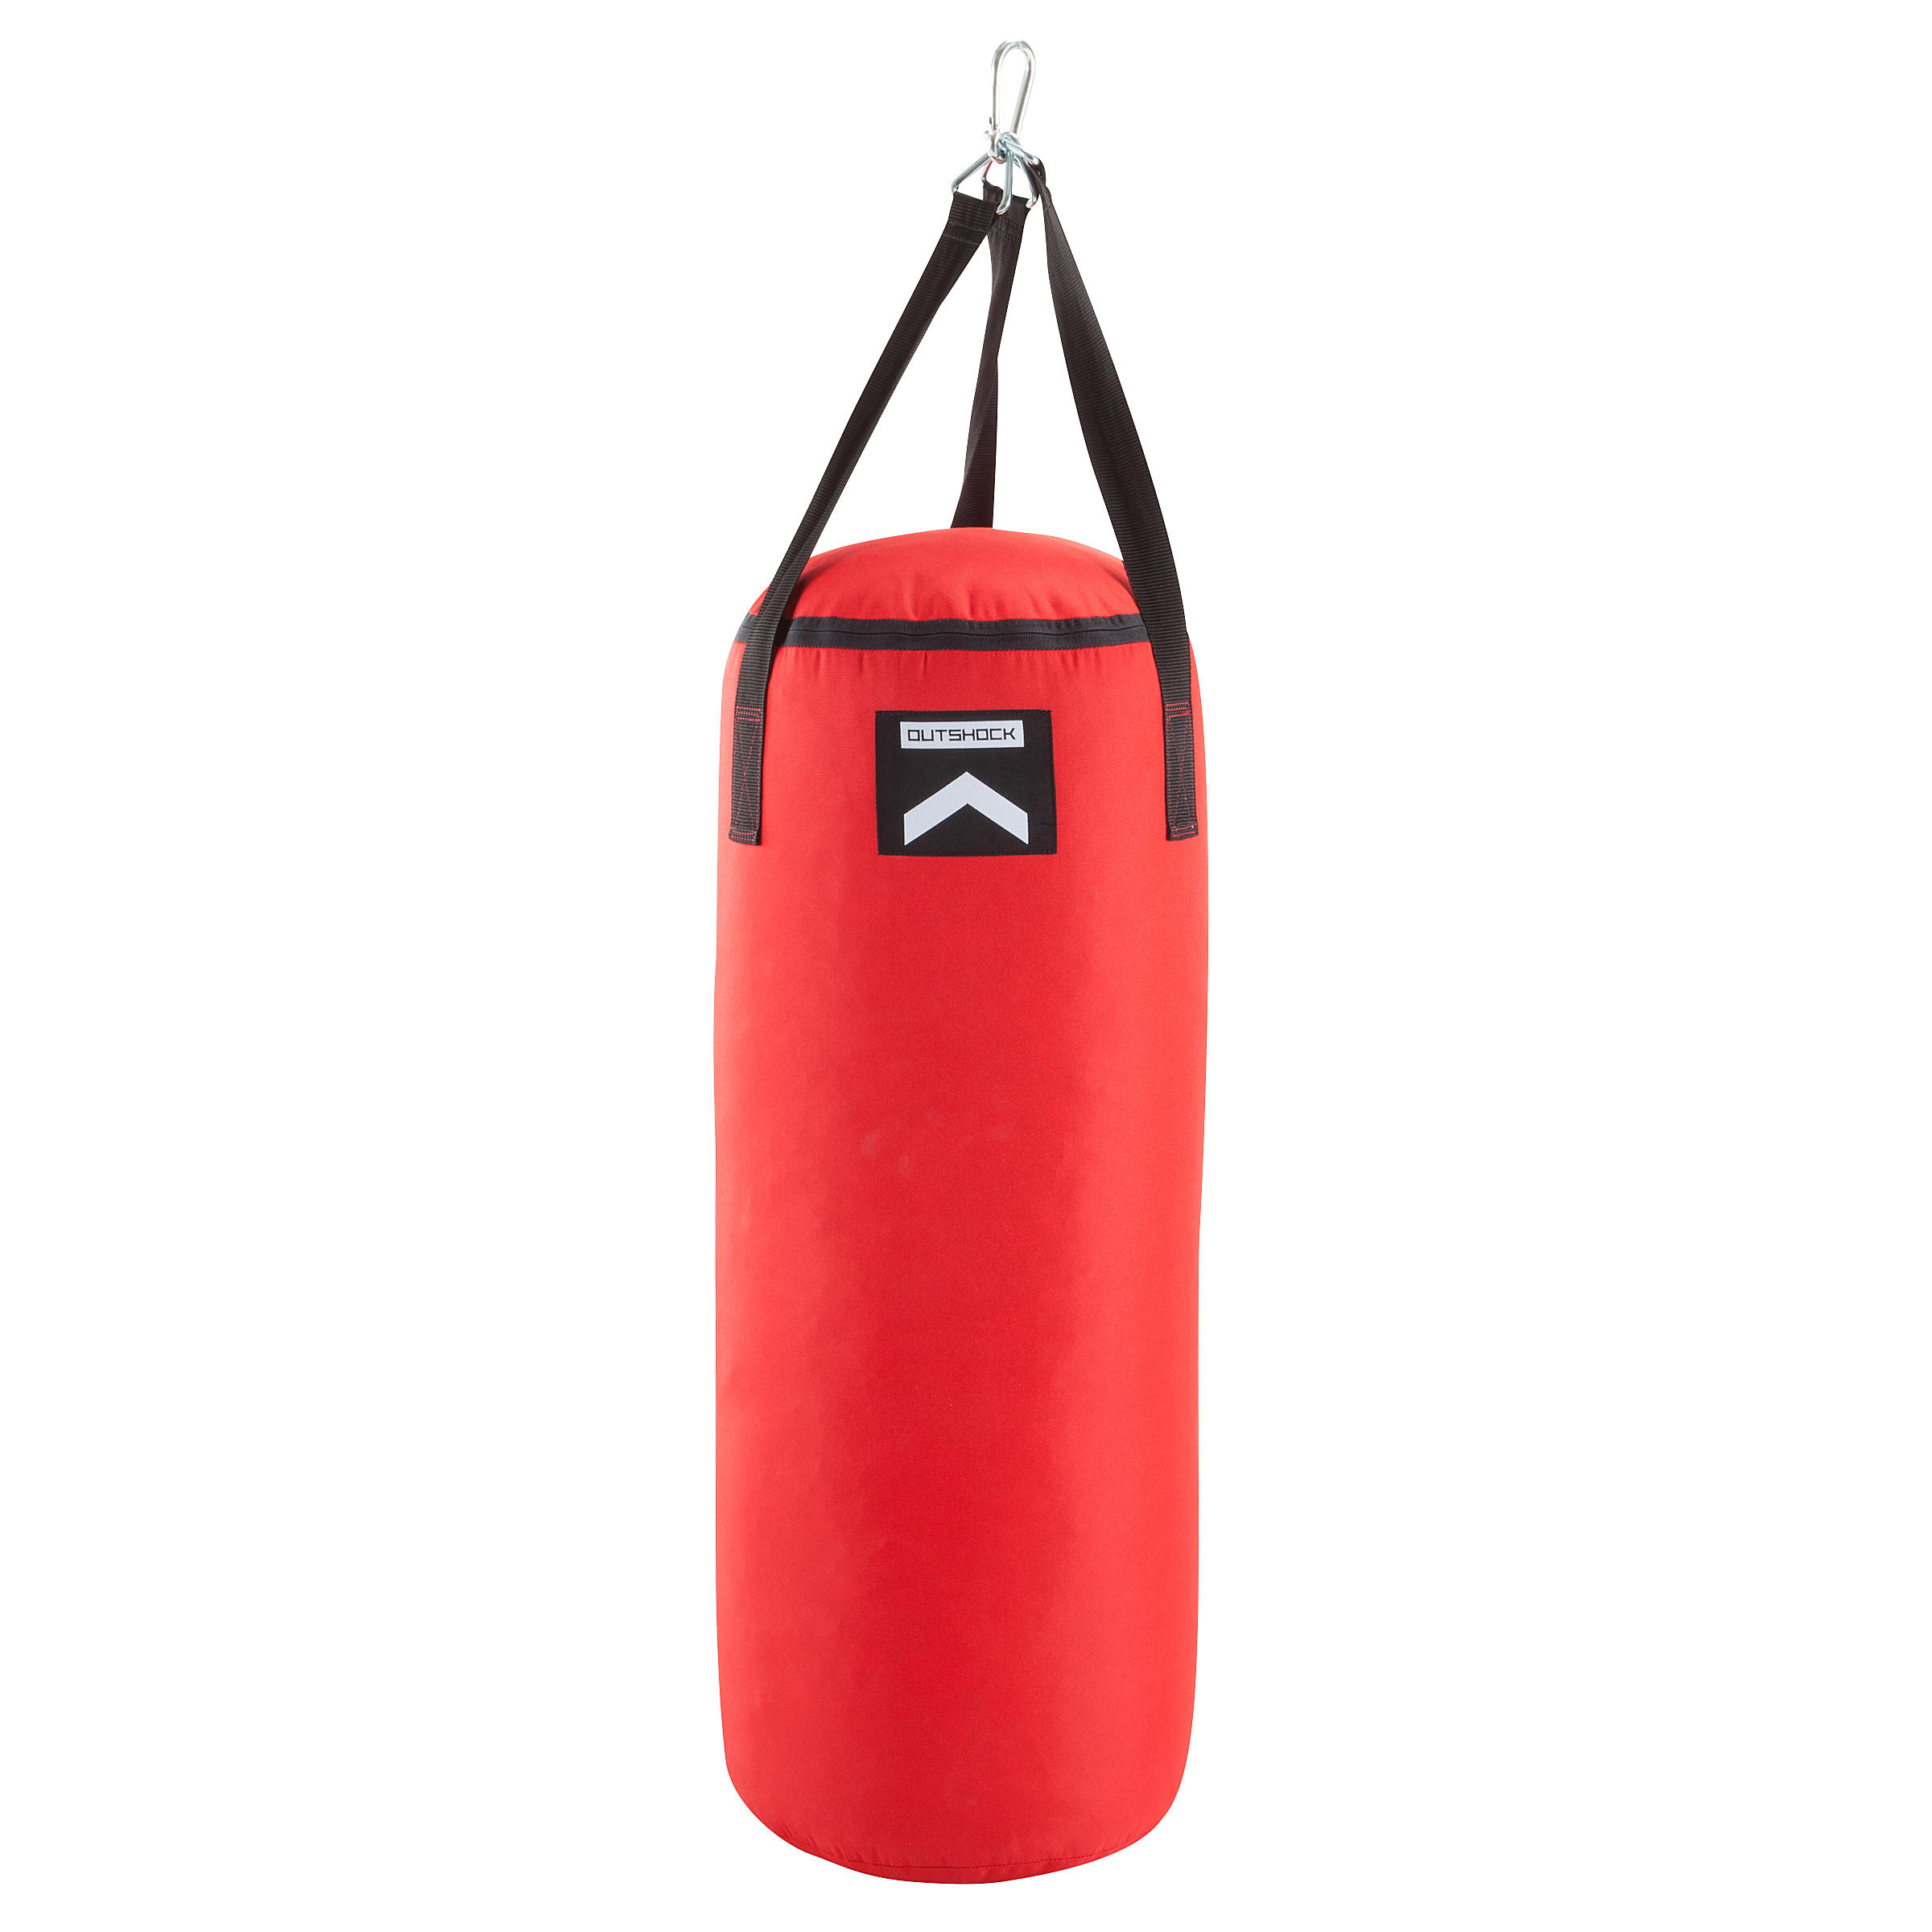 PB 850 Punch Bag - Red